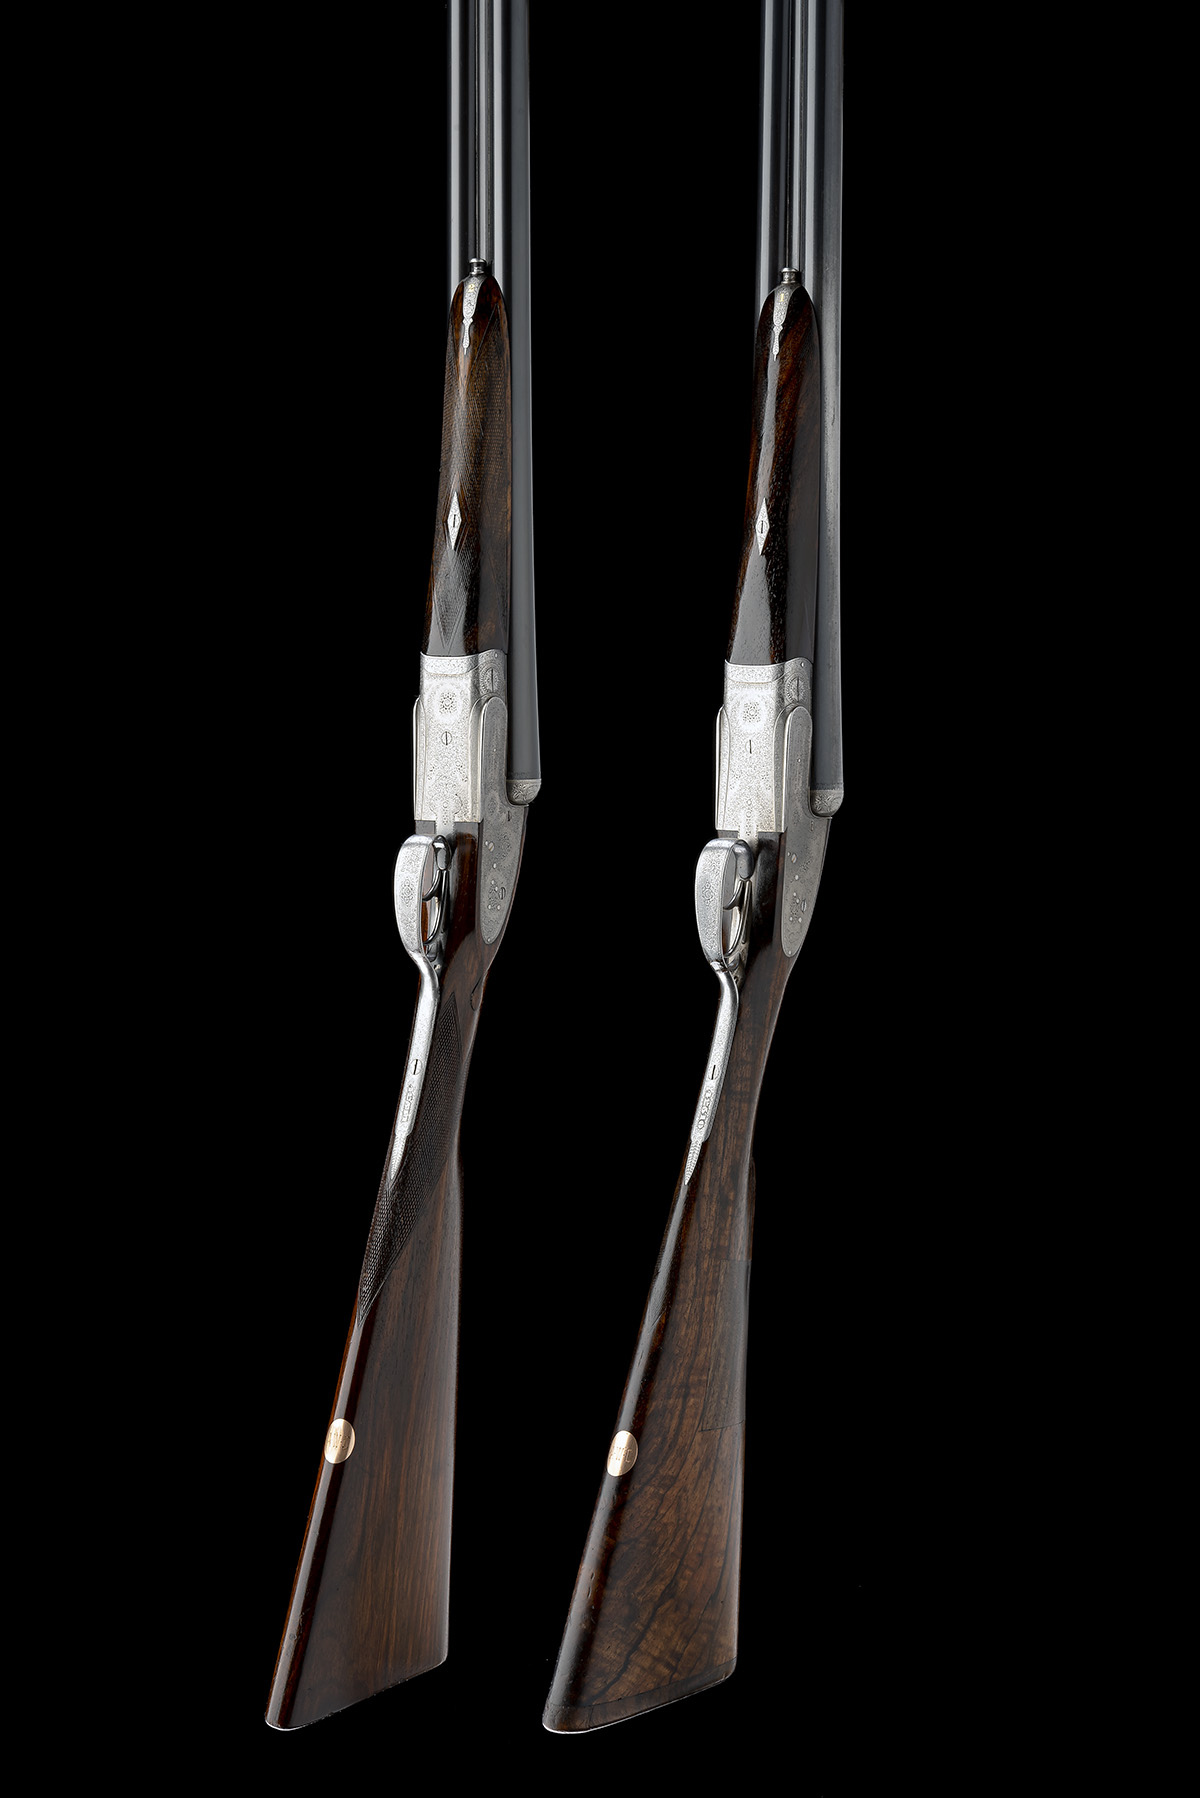 COGSWELL & HARRISON A PAIR OF 12-BORE 'EXTRA QUALITY VICTOR' SIDELOCK EJECTORS, serial no. 42510/ - Image 8 of 10